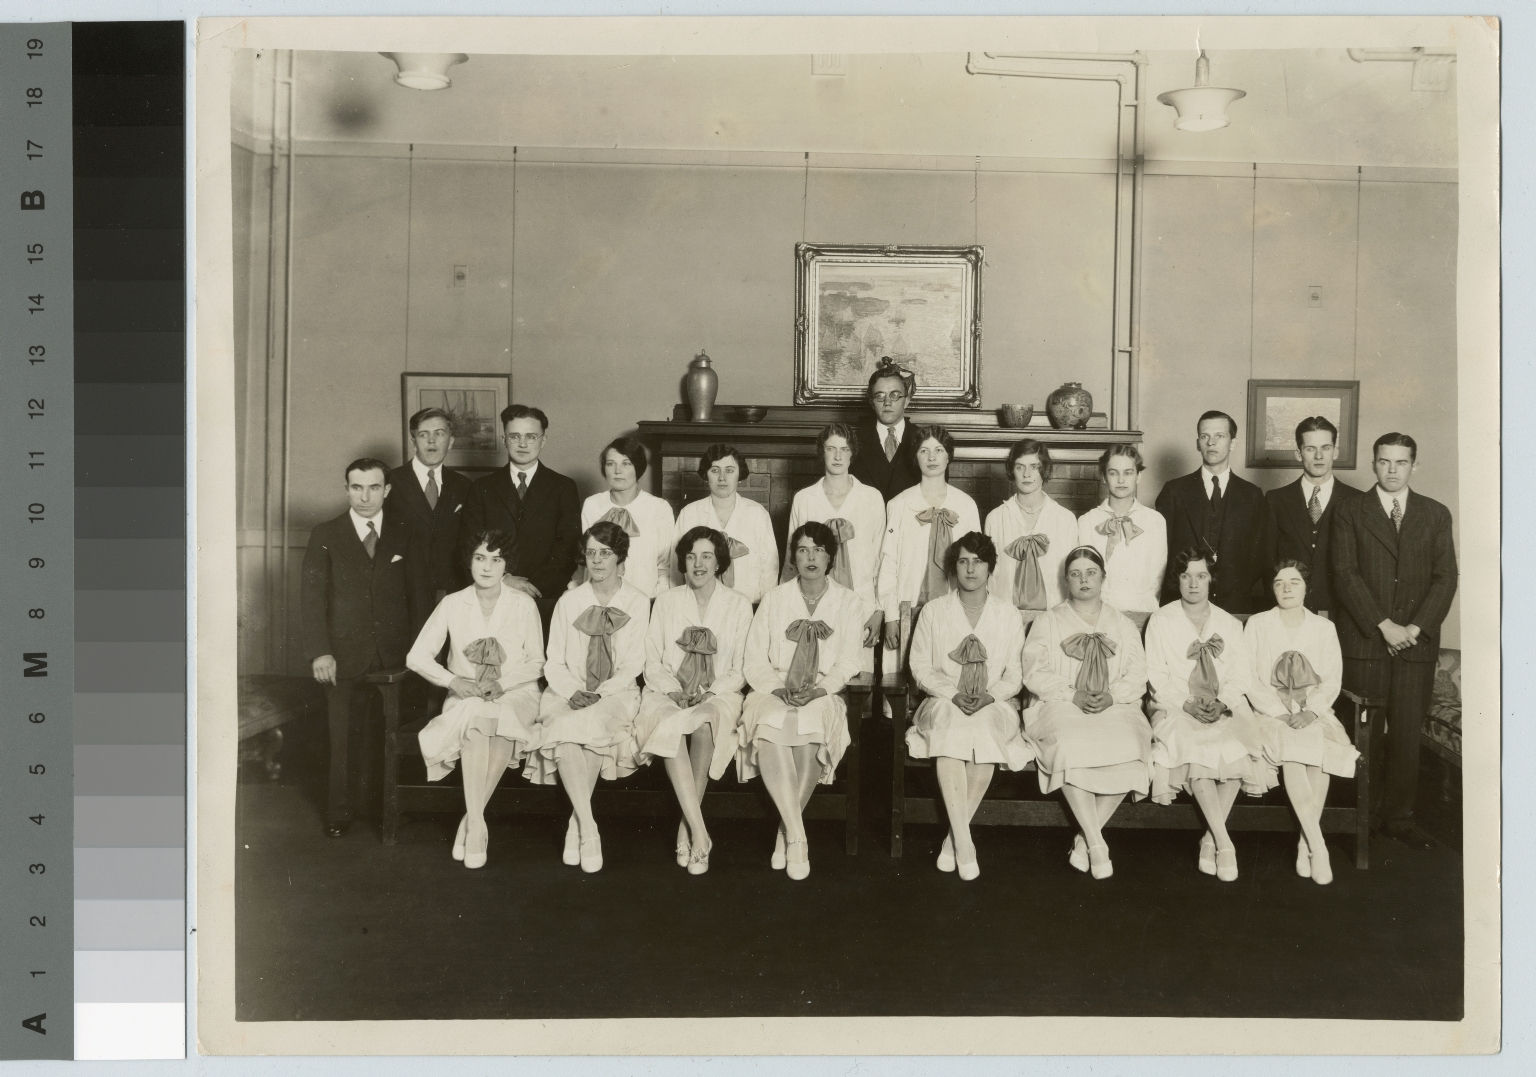 Academics, class photo, group portrait of Rochester Athenaeum and Mechanics Institute students, [1920-1930]